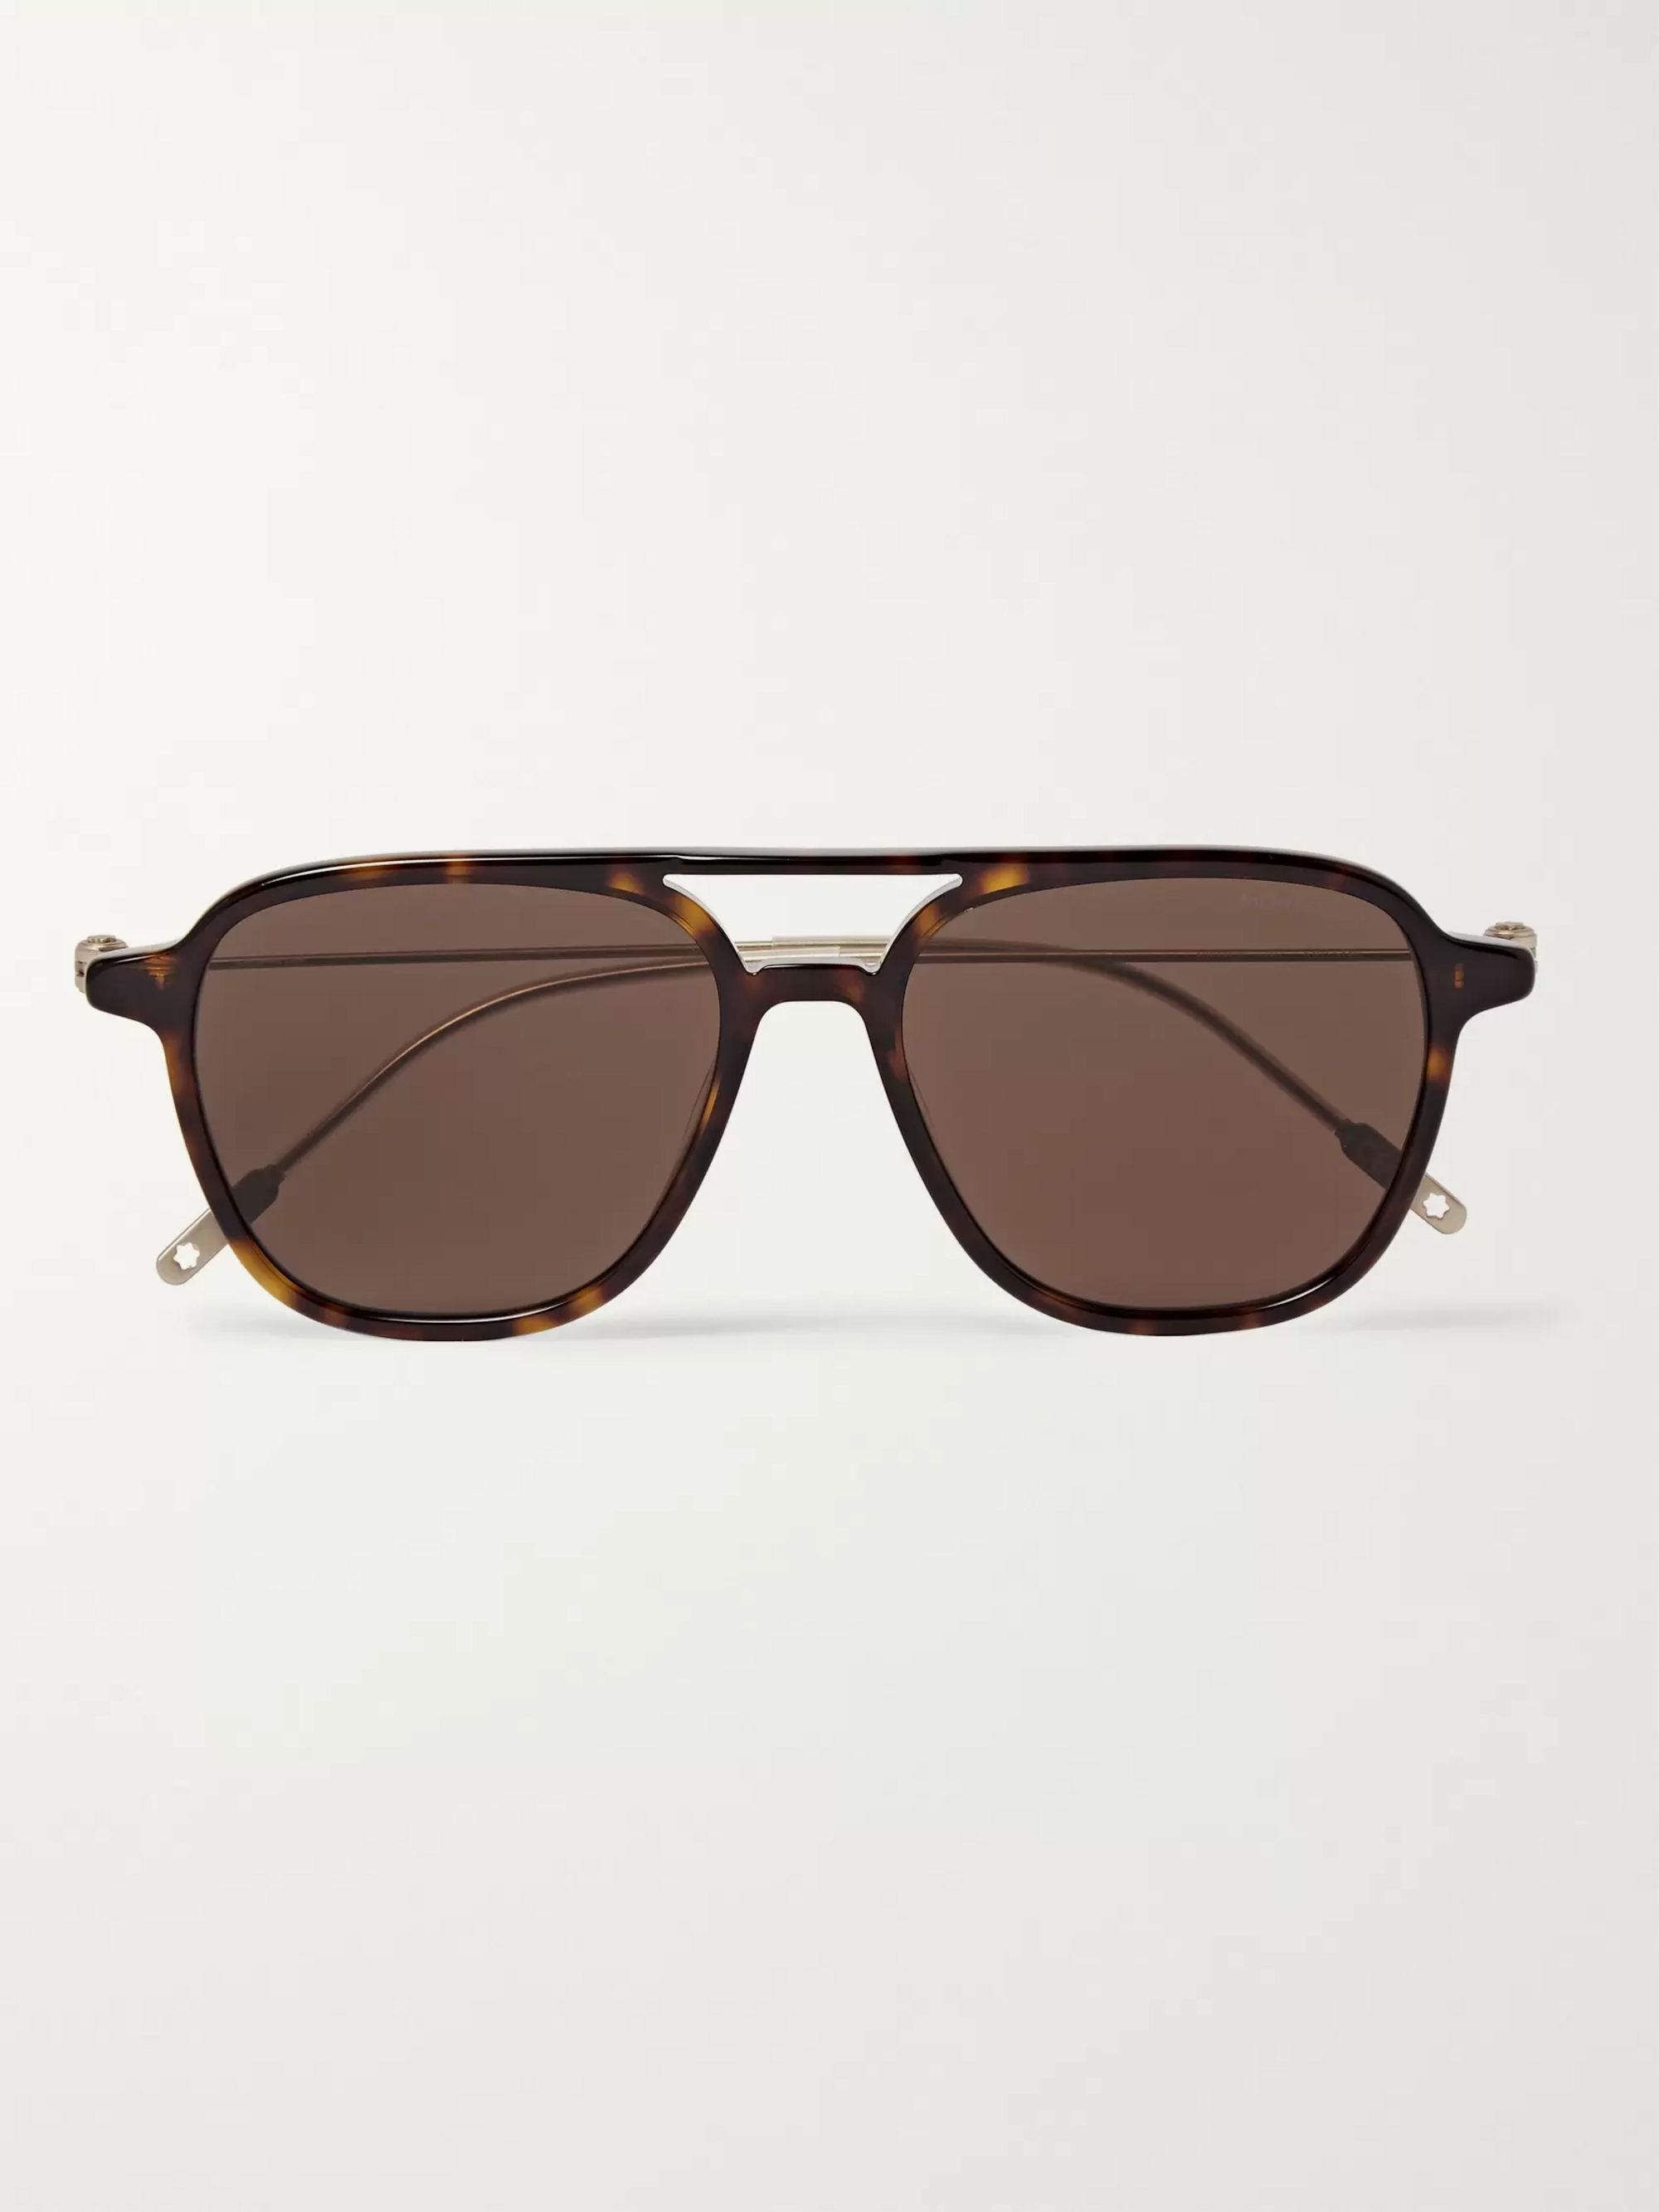 Montblanc Navigator Aviator-Style Tortoiseshell Acetate and Gold-Tone Sunglasses